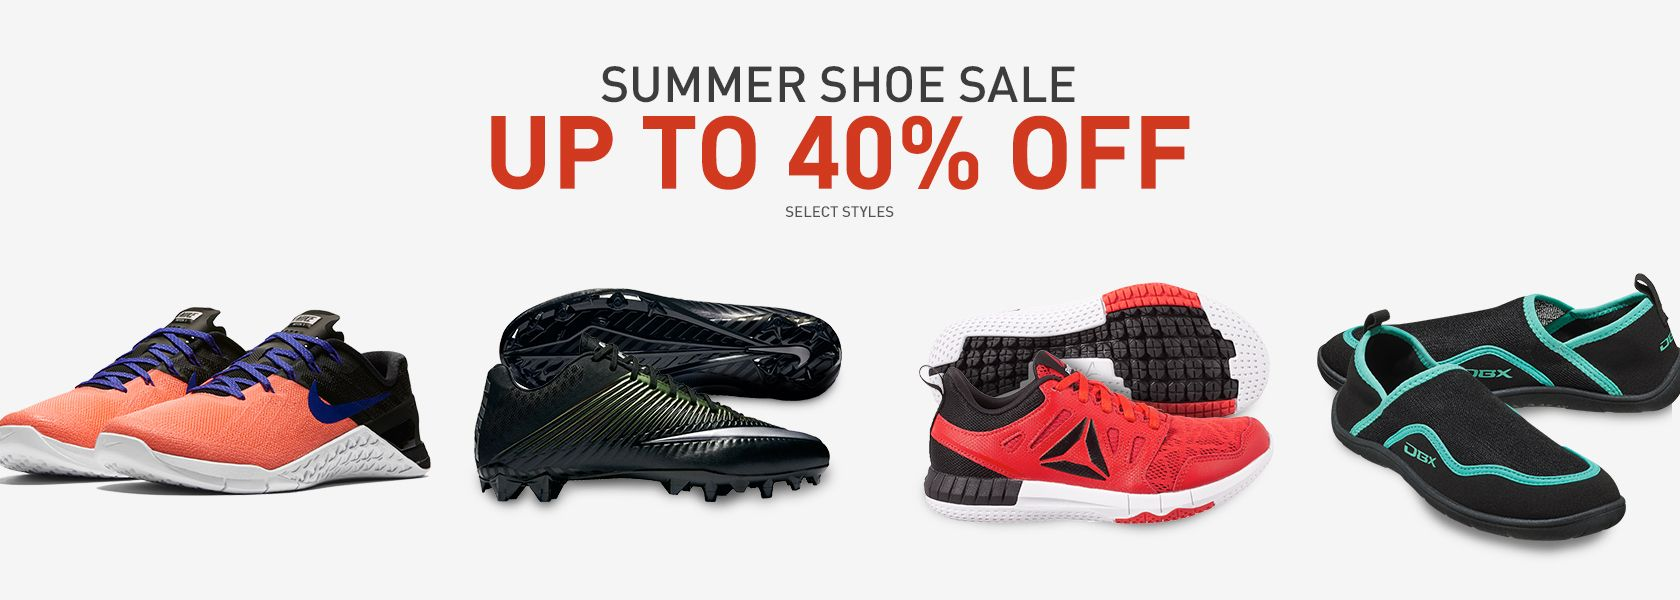 Shop Summer Shoe Sale